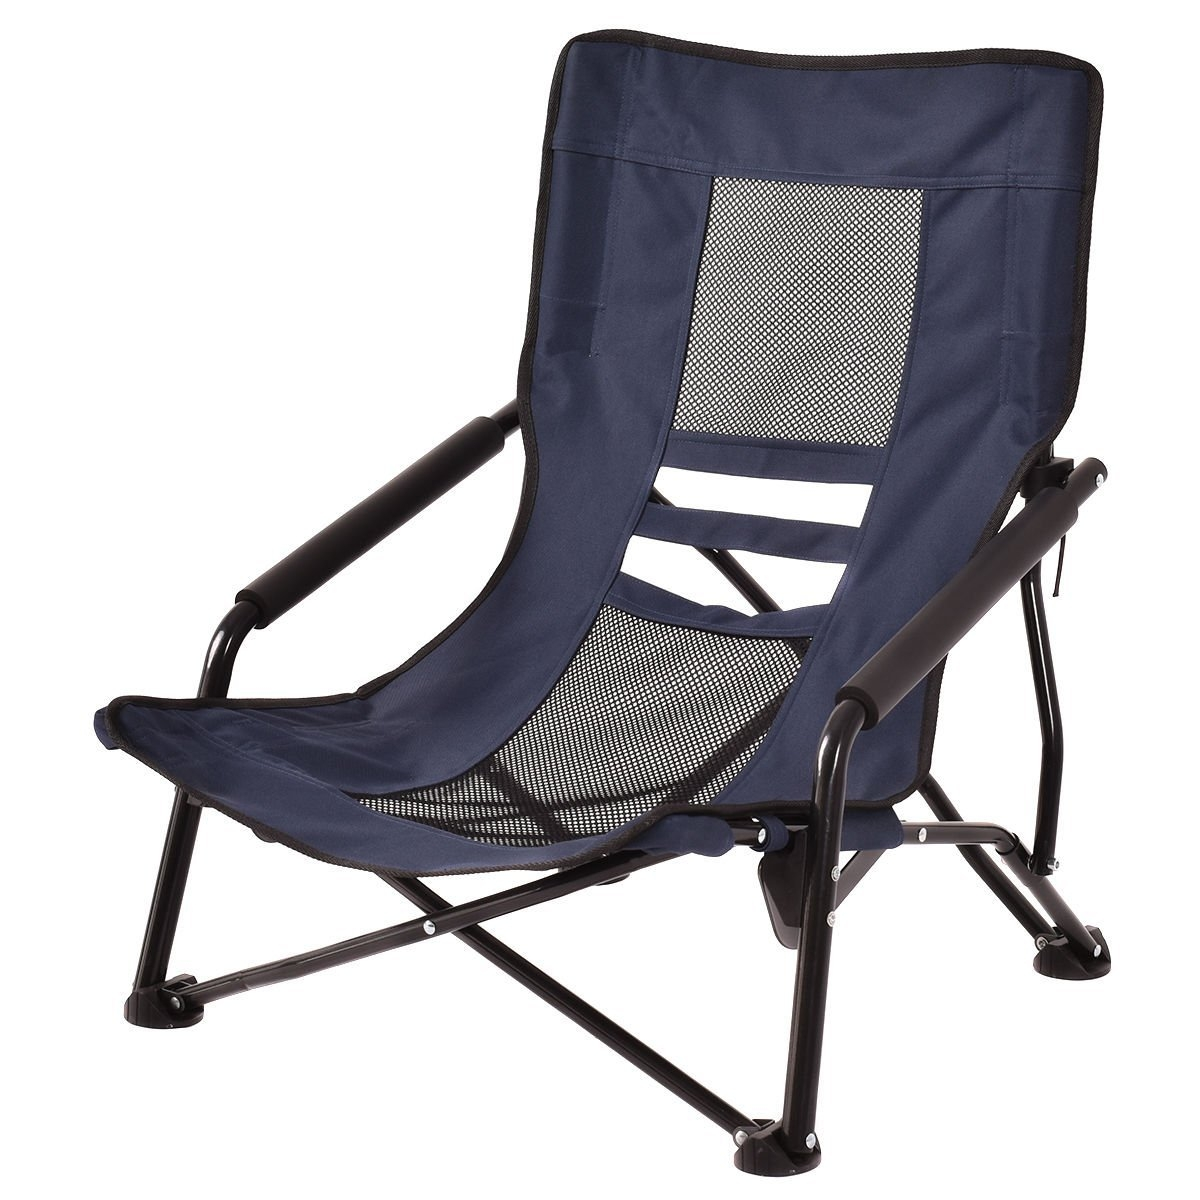 New MTN-G Outdoor High Back Folding Beach Chair Camping Furniture Portable Mesh Seat (Blue)